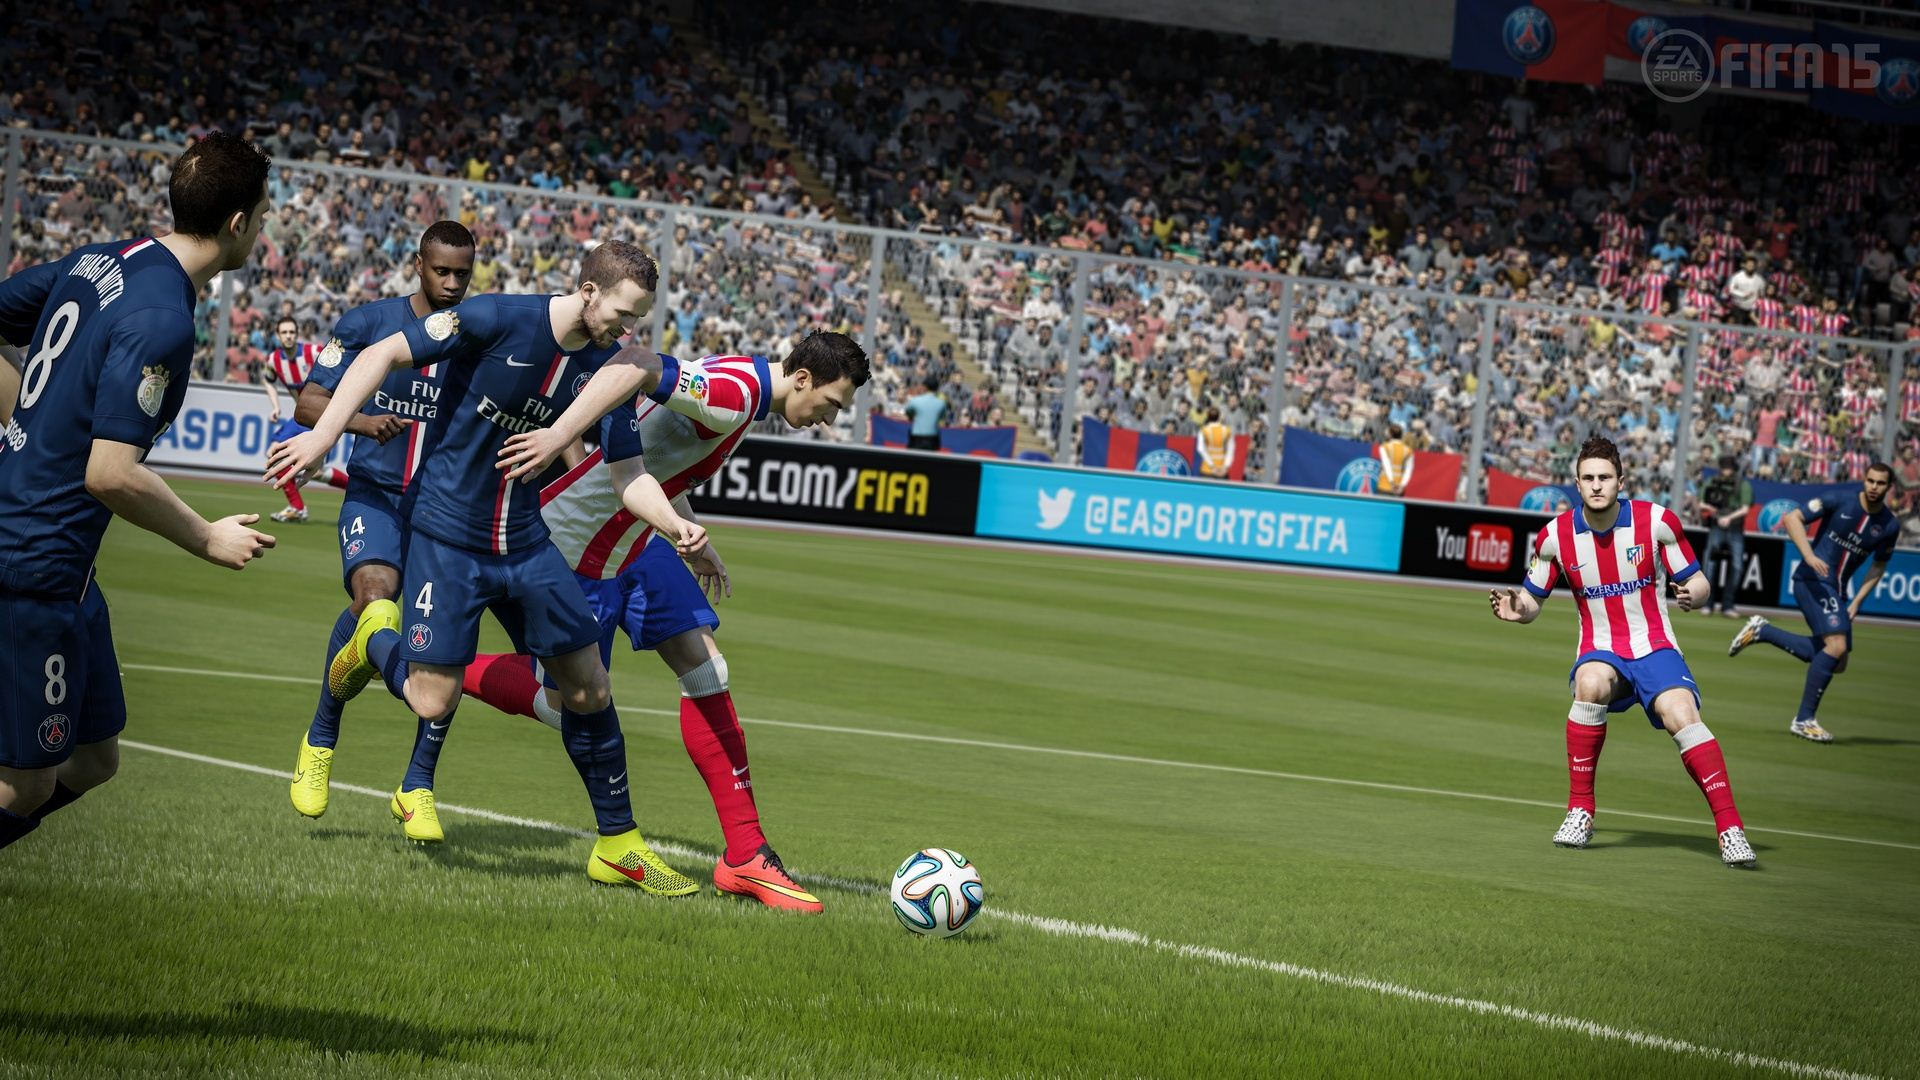 Fifa 15 Galaxy S6 Gameplay - Fliptroniks.com